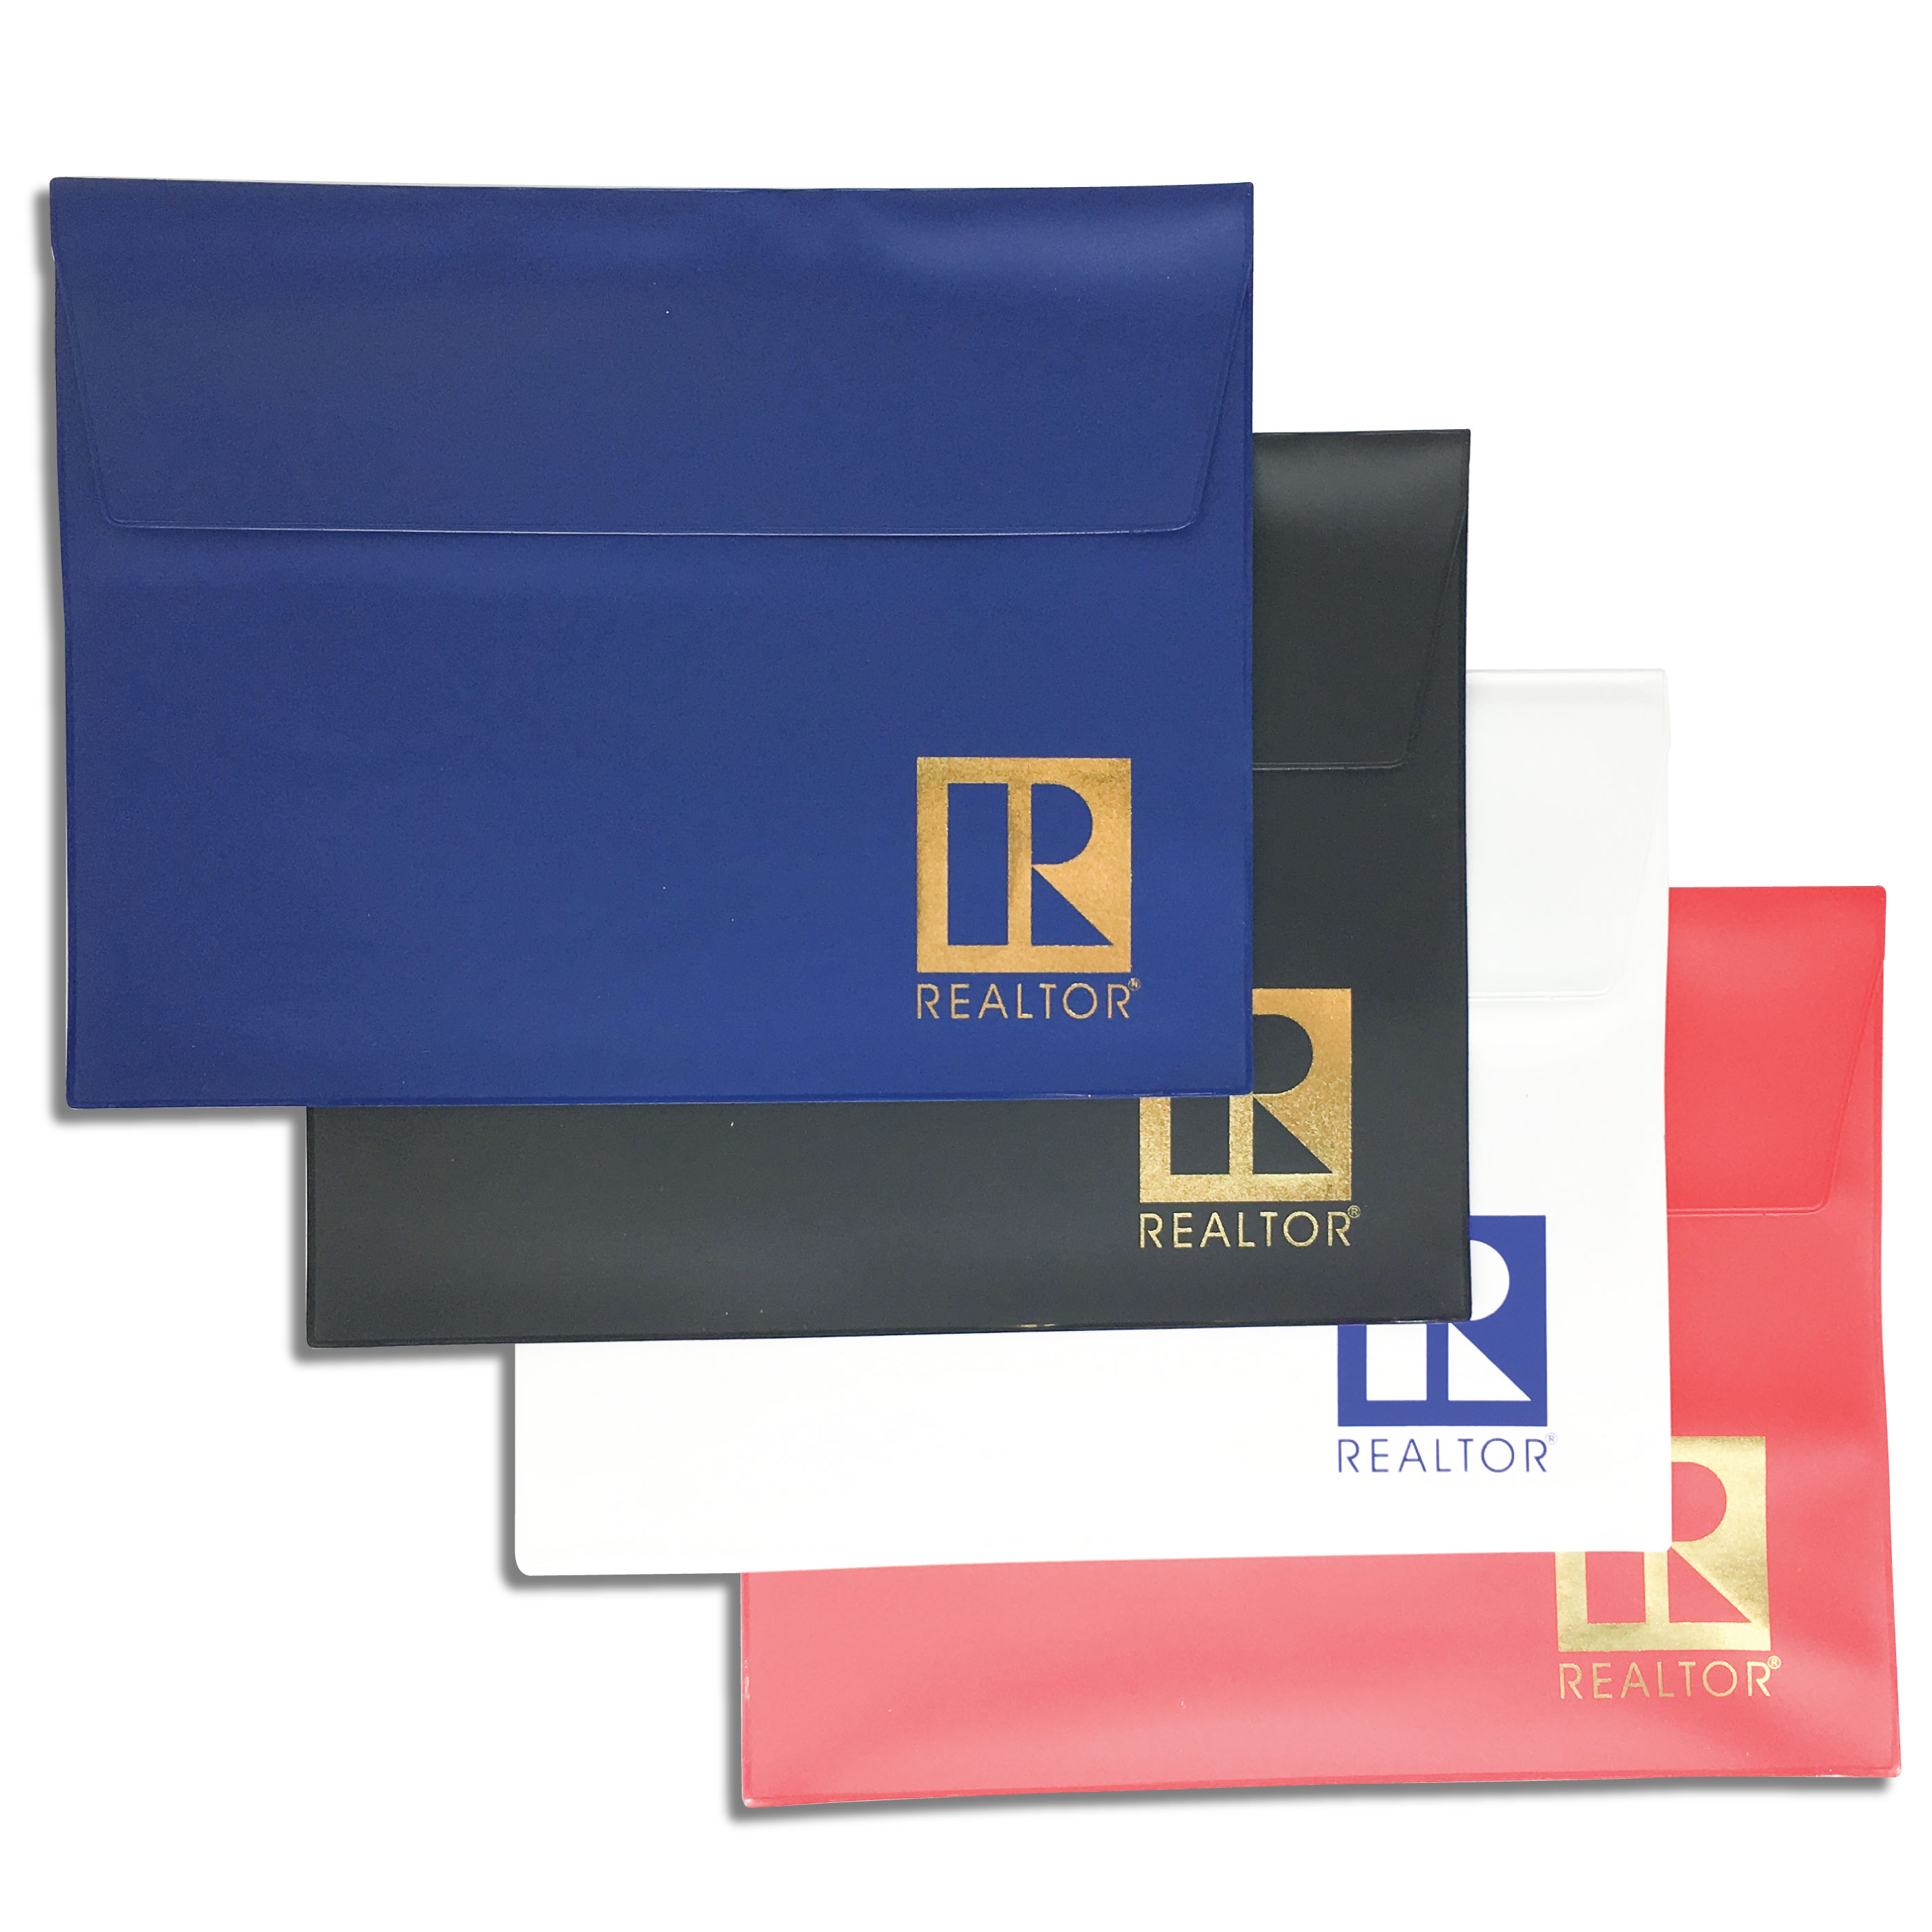 Economy Letter Sized Vinyl Folio Economy,Portfolios,Holders,Pouches,Files,Documents,Closings,Letters,Padfolio,Papers,Documents,Pouch